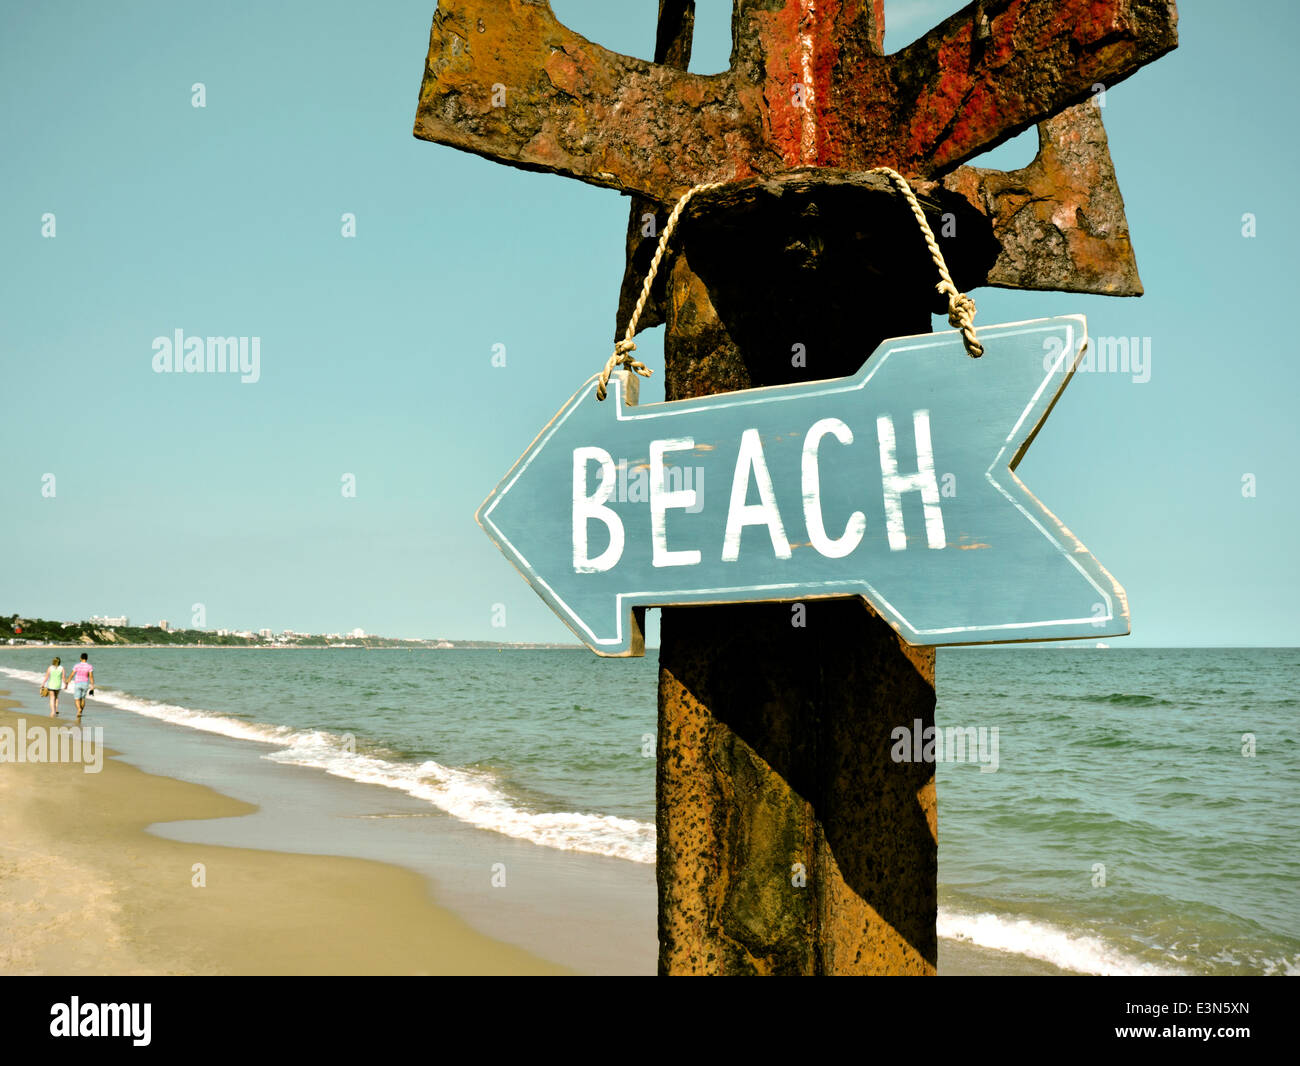 Retro concept 1950's 1960's film image treatment beach sign hanging on rustic post couple in background - Stock Image